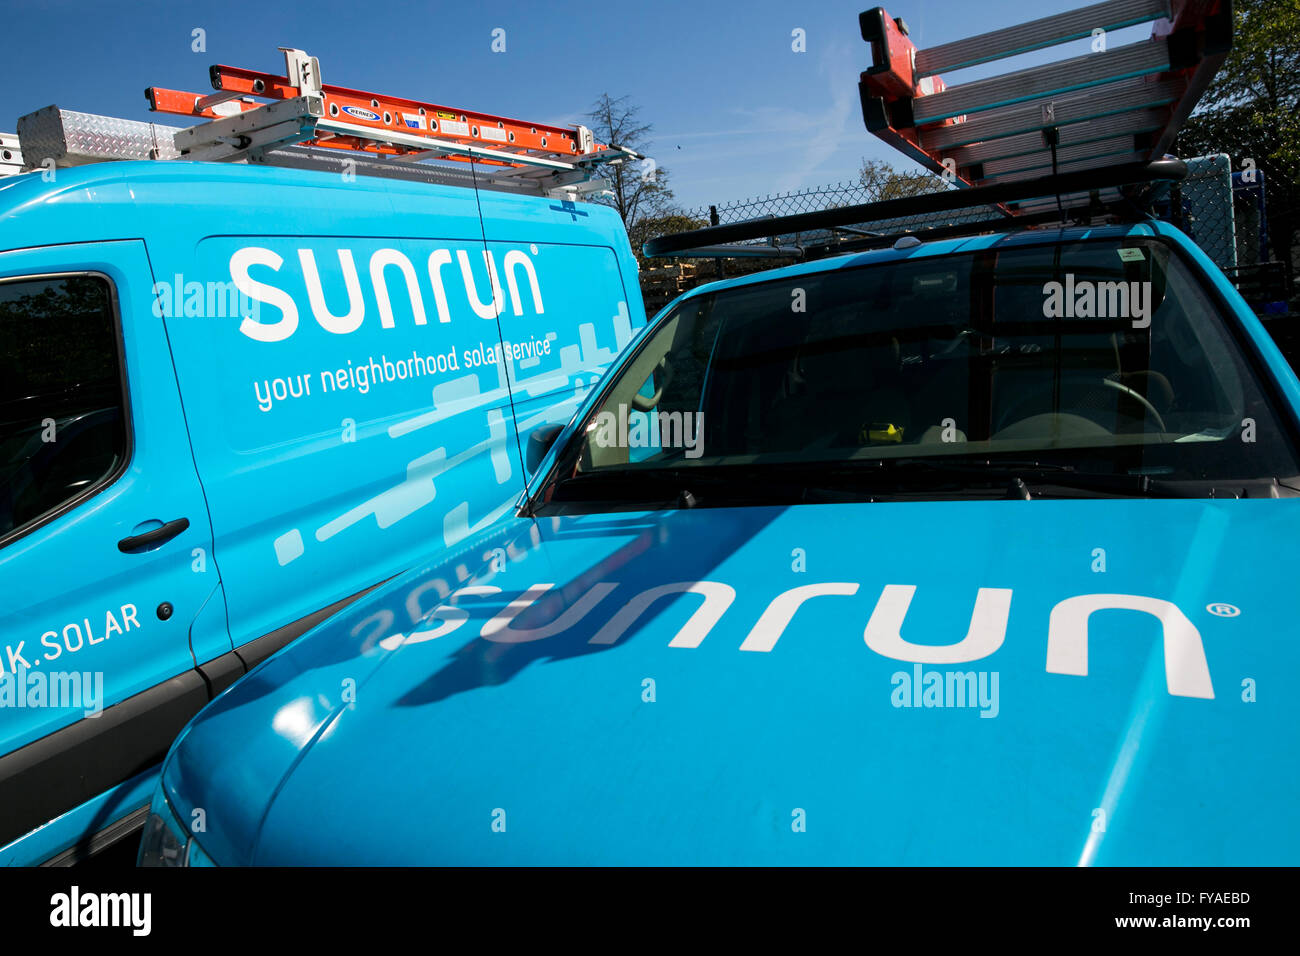 Vans Stock Photos & Vans Stock Images - Page 2 - Alamy